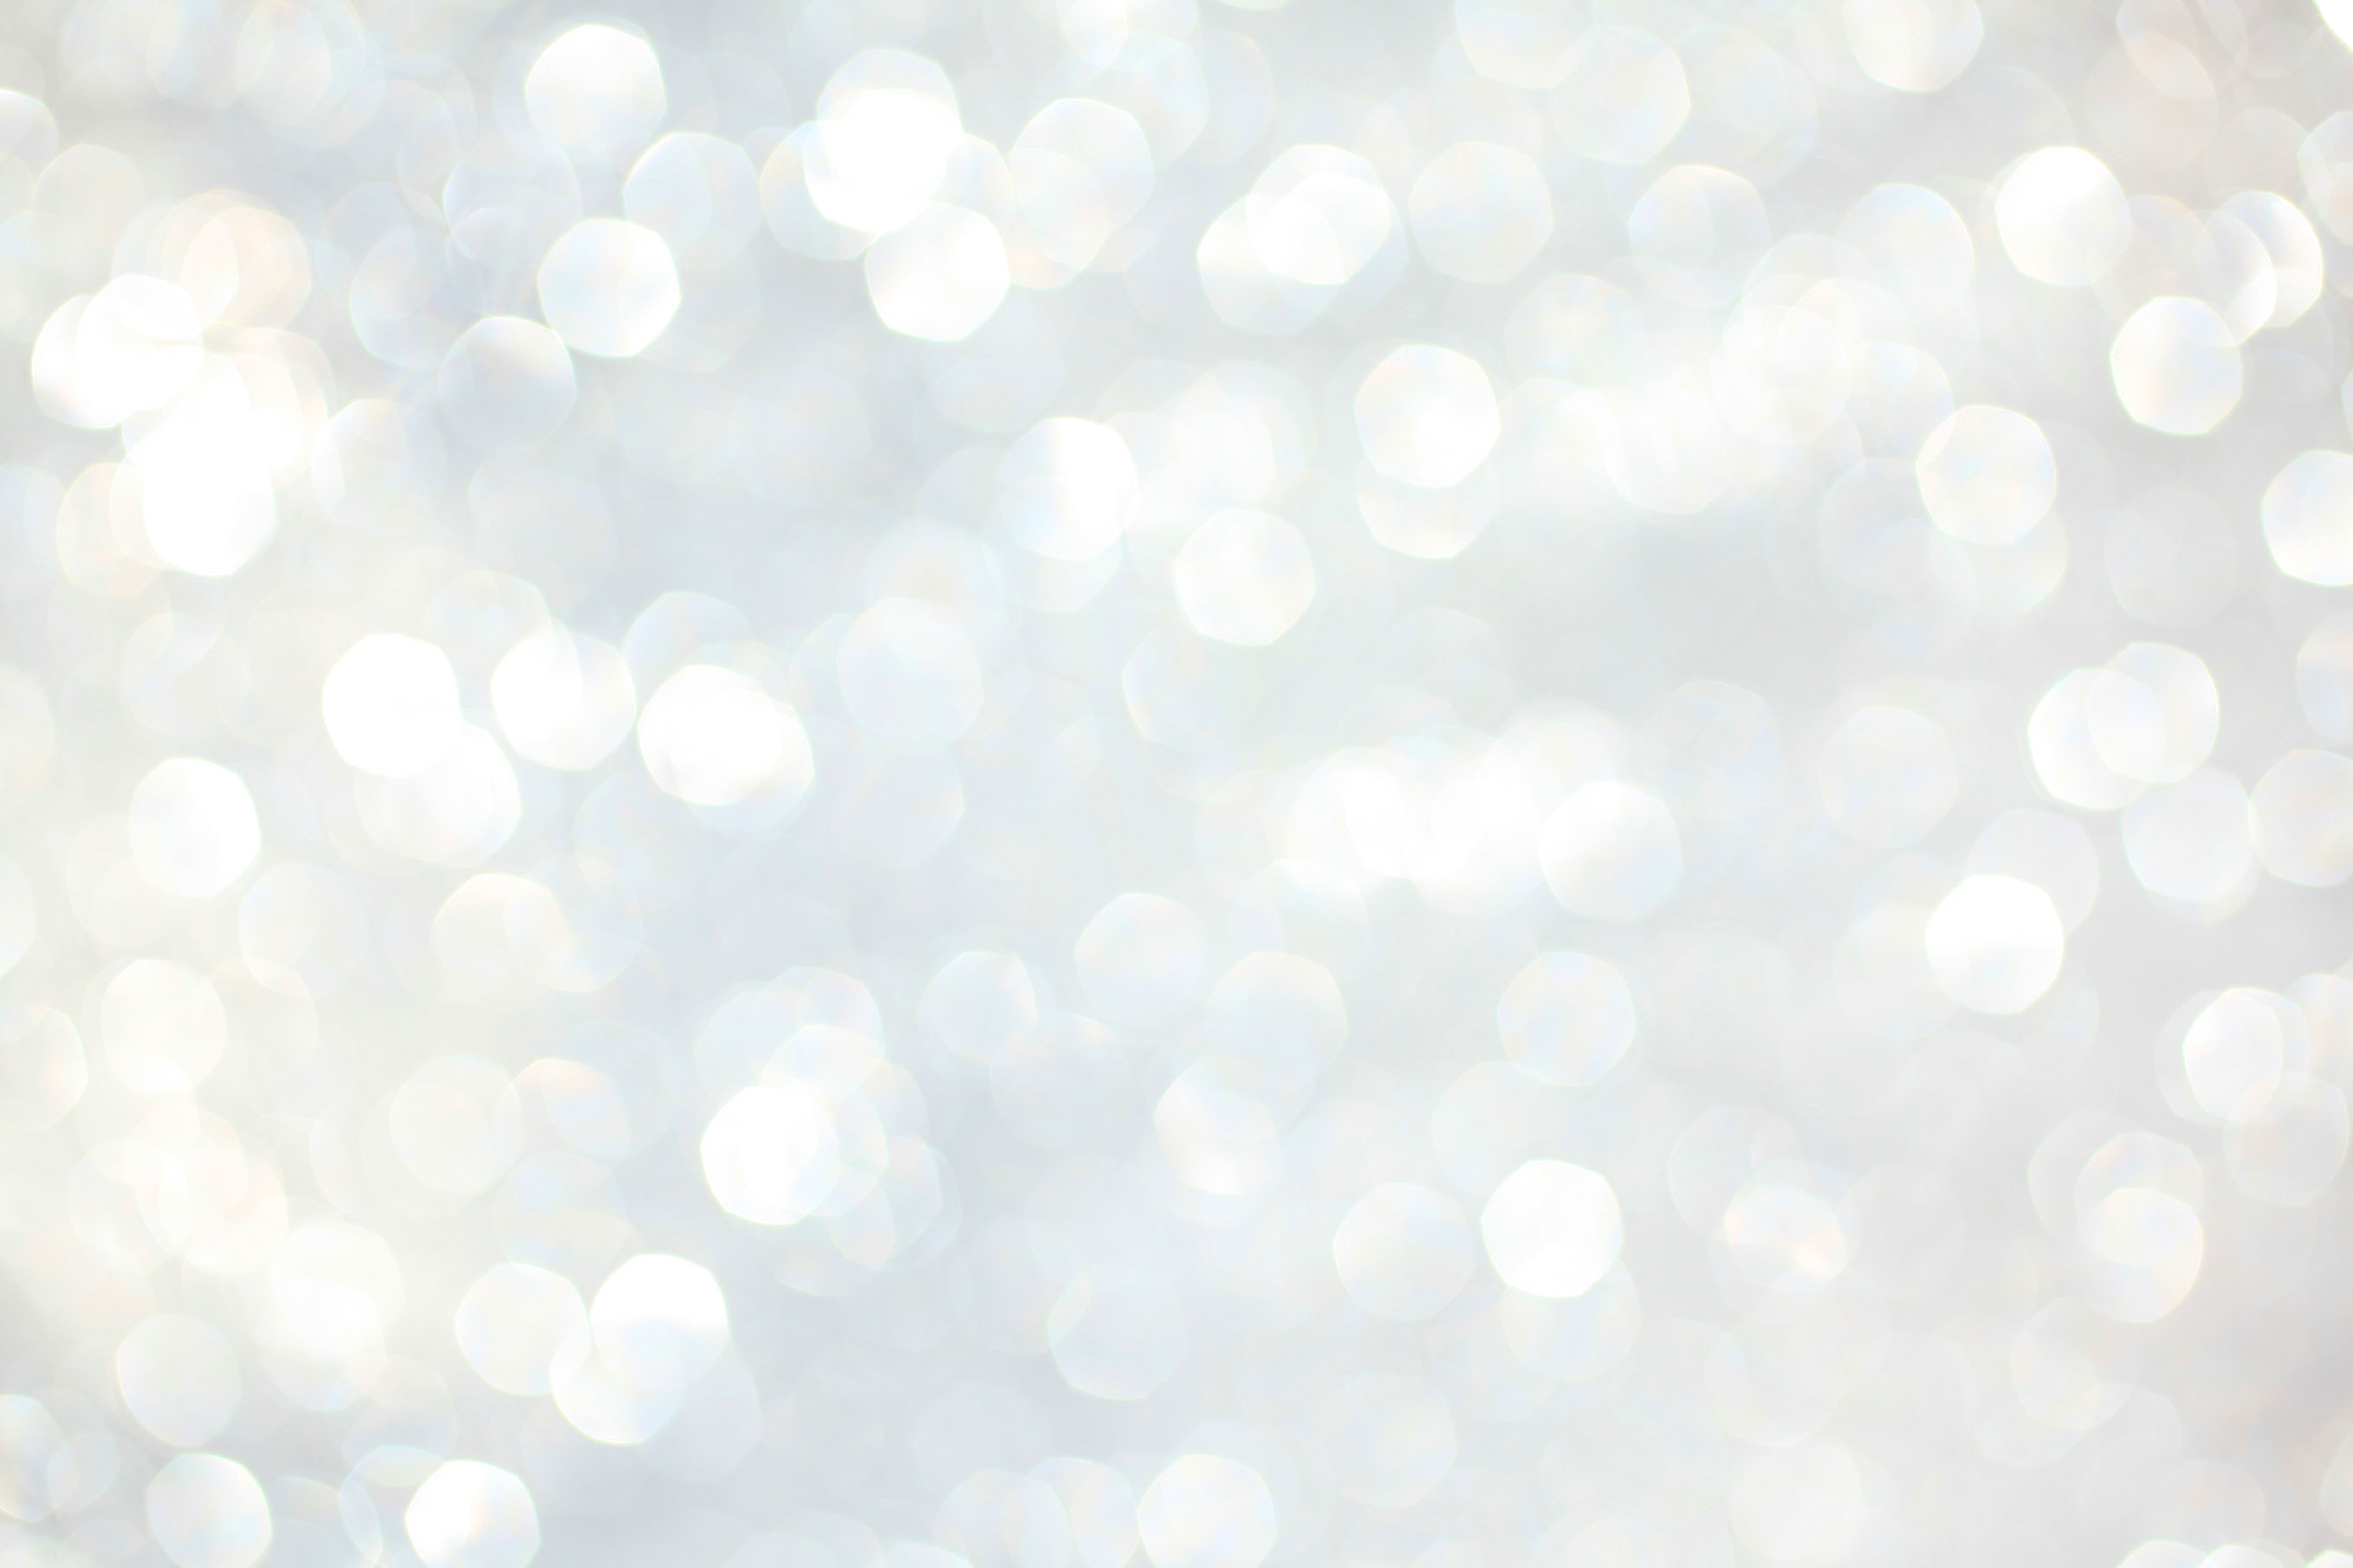 white sparkle wallpaper  White Sparkle Wallpaper (42  images)